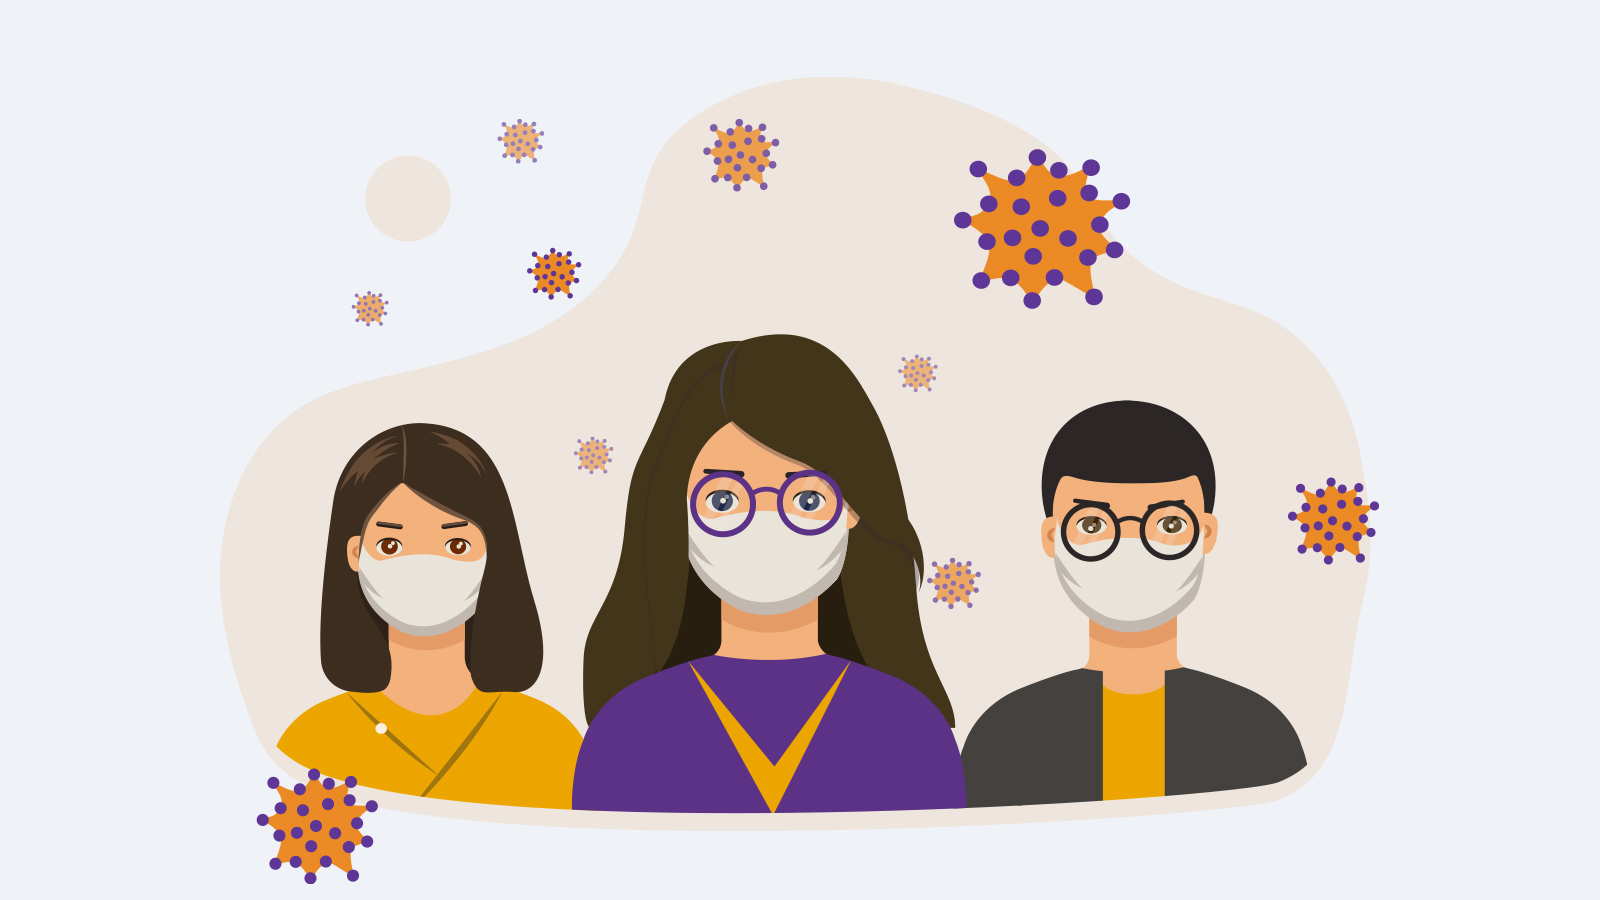 How to use disinfectant to clean eyeglasses in the pandemic of Coronavirus?